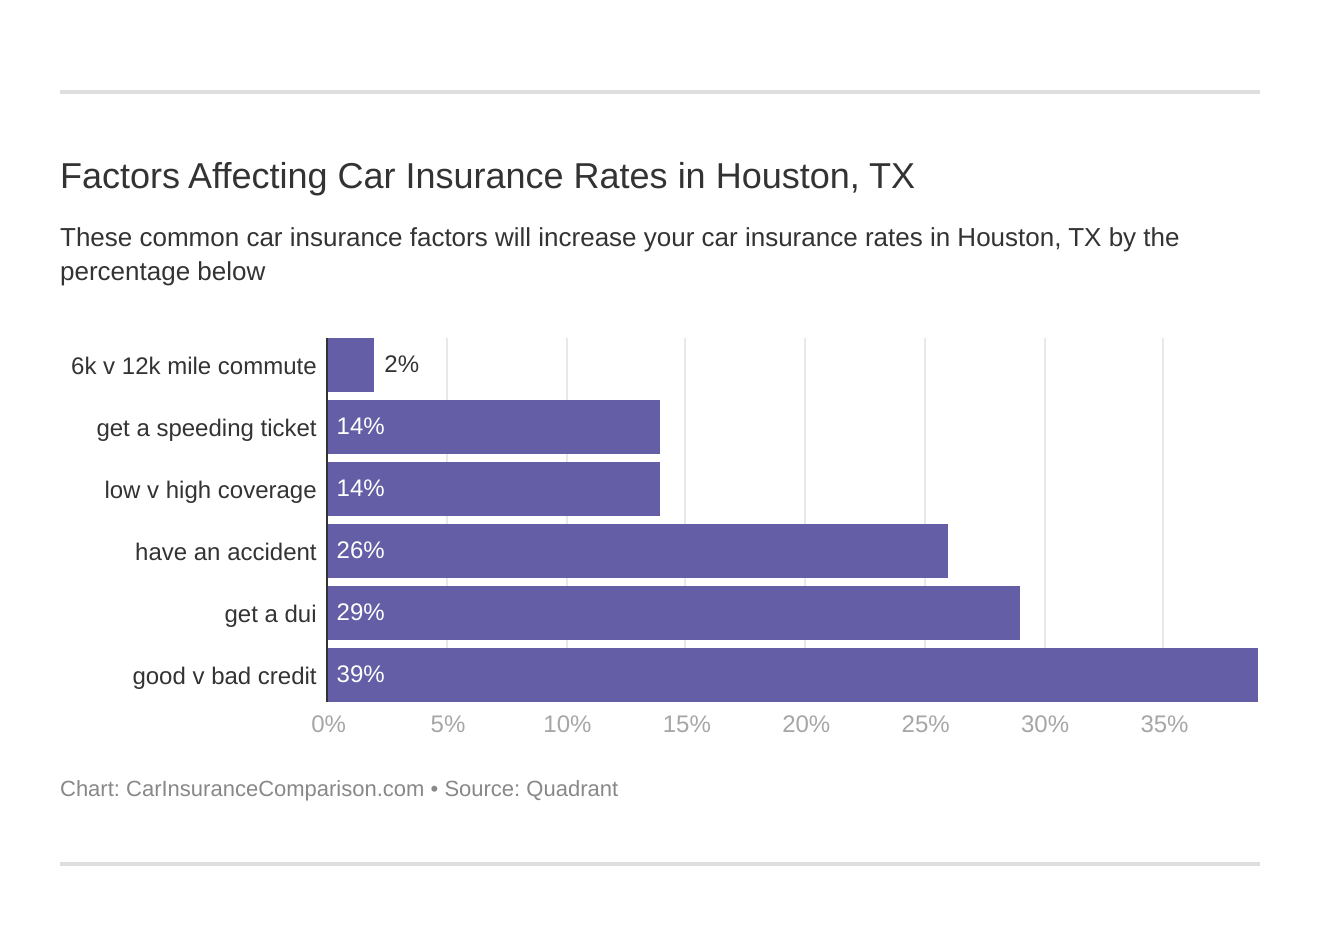 Factors Affecting Car Insurance Rates in Houston, TX